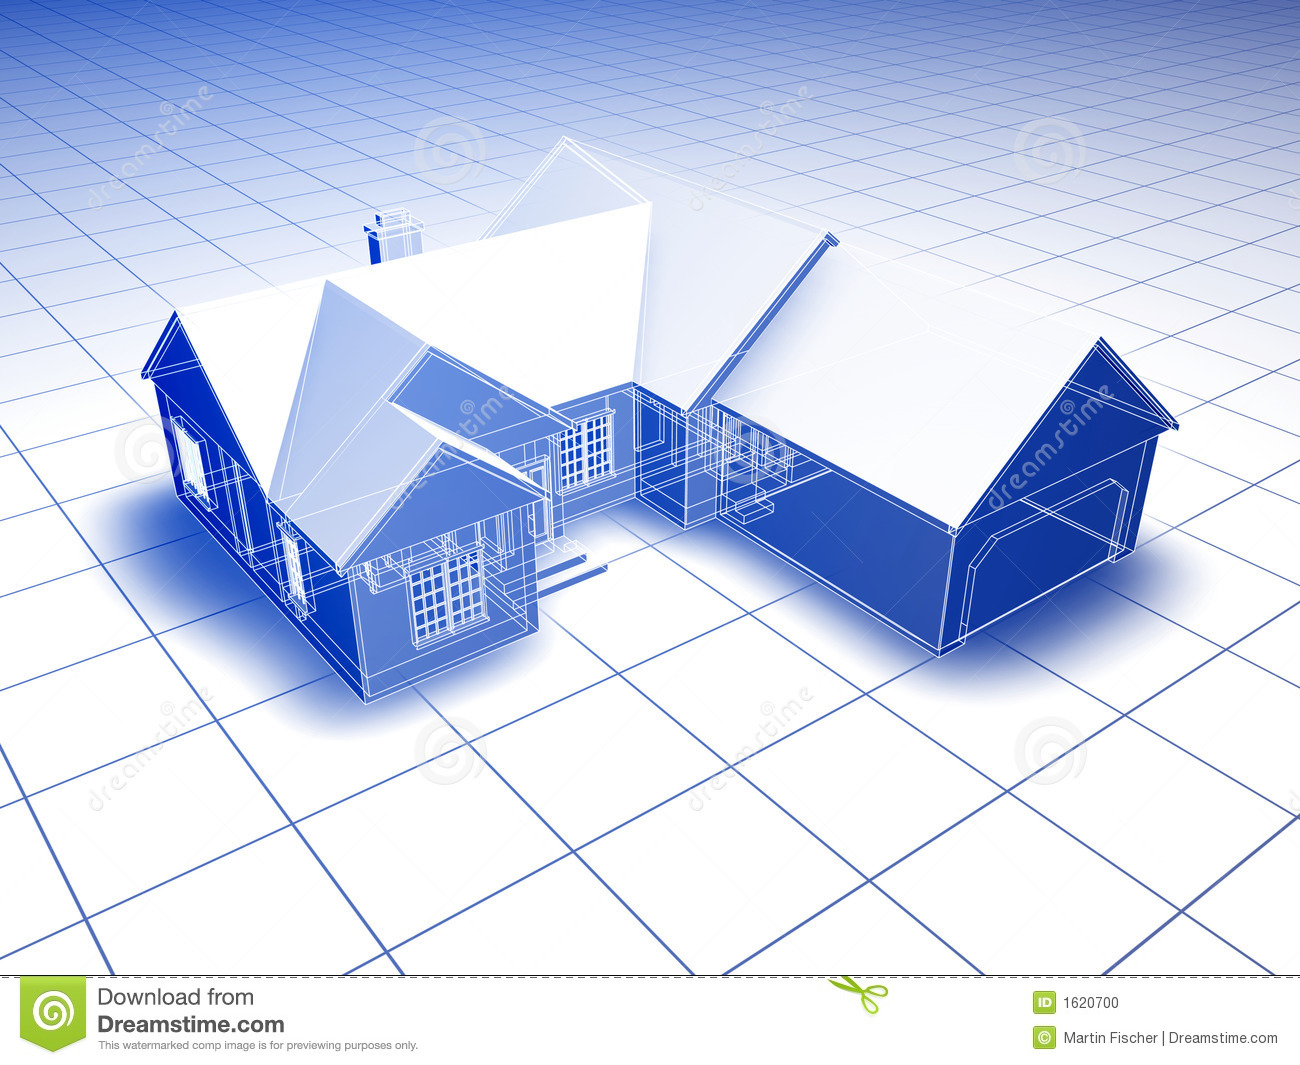 Blueprint style 3D rendered house. blue on white background.